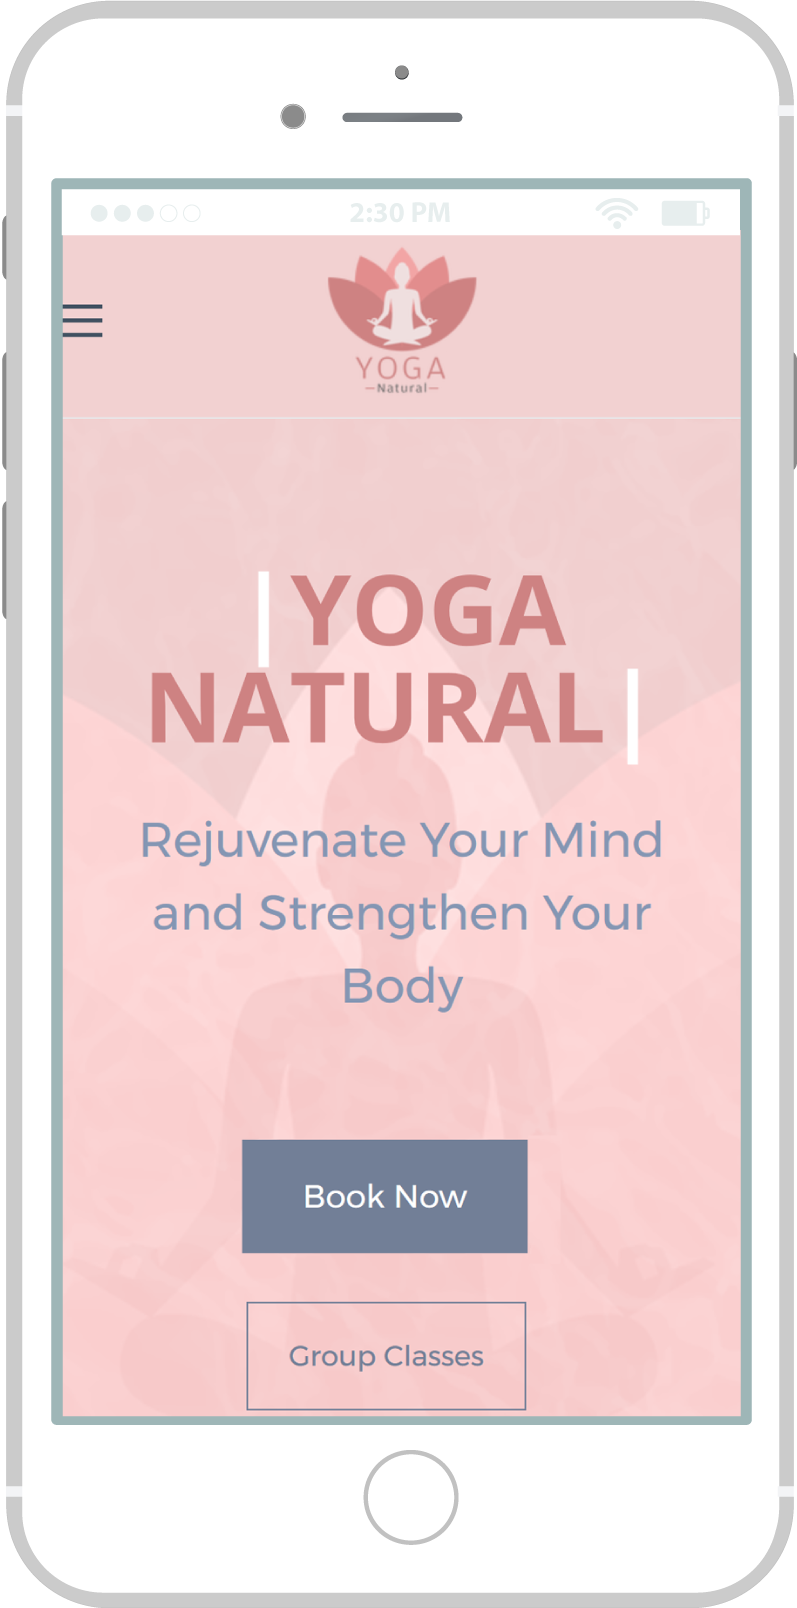 All-In-One Website To Sell Your Yoga Classes Online - Yoga Natural Mobile View 1 Example